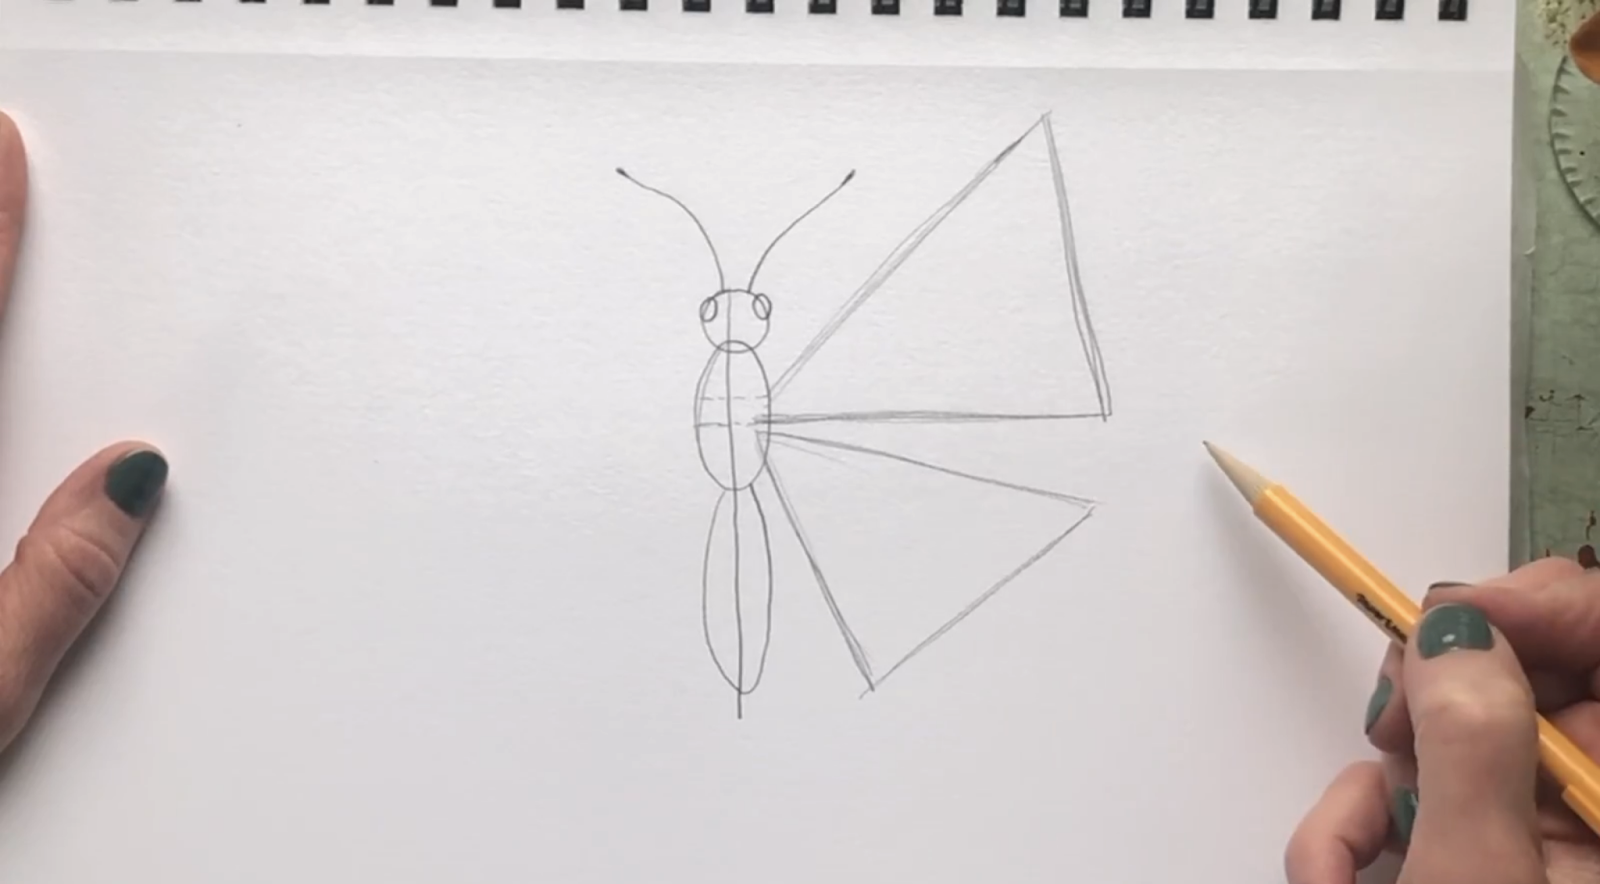 Place the bottom wing by drawing a slightly tilted triangle coming out from the same area.